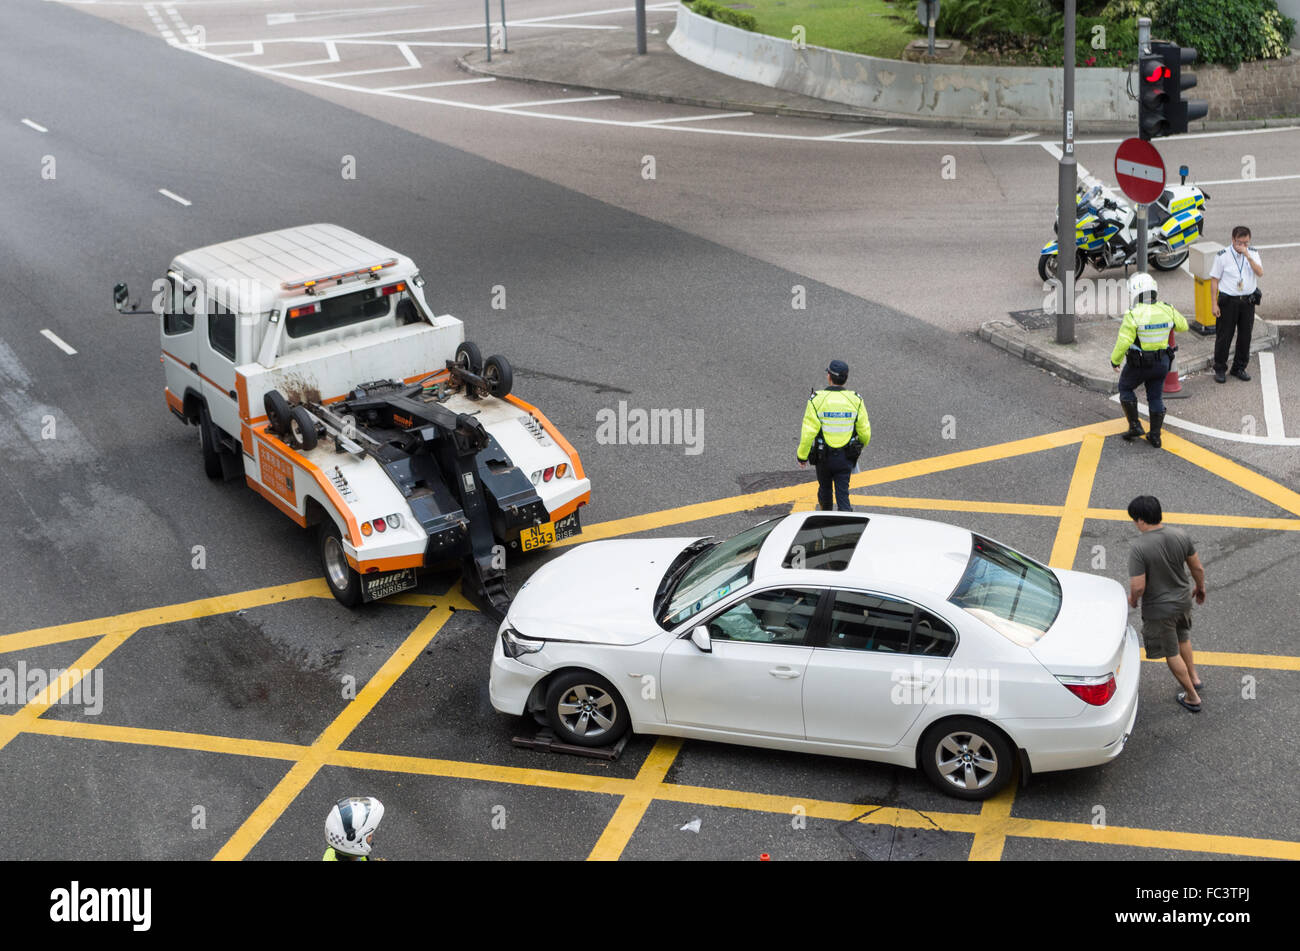 road accidents - Stock Image